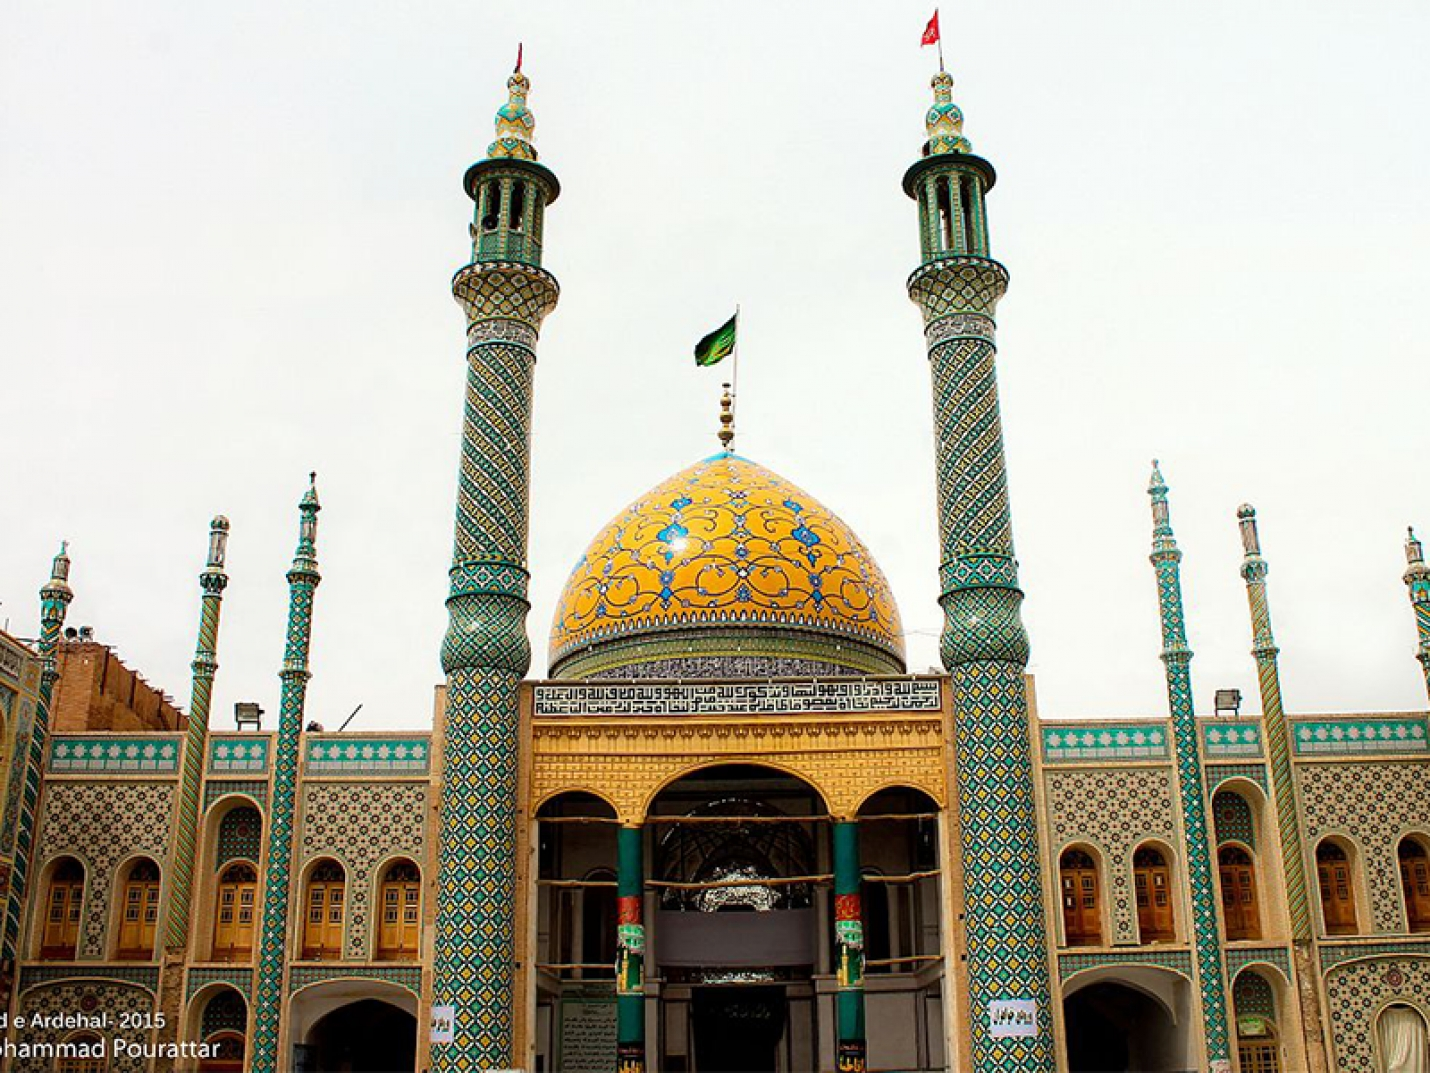 Sultan Ali Holy Shrine